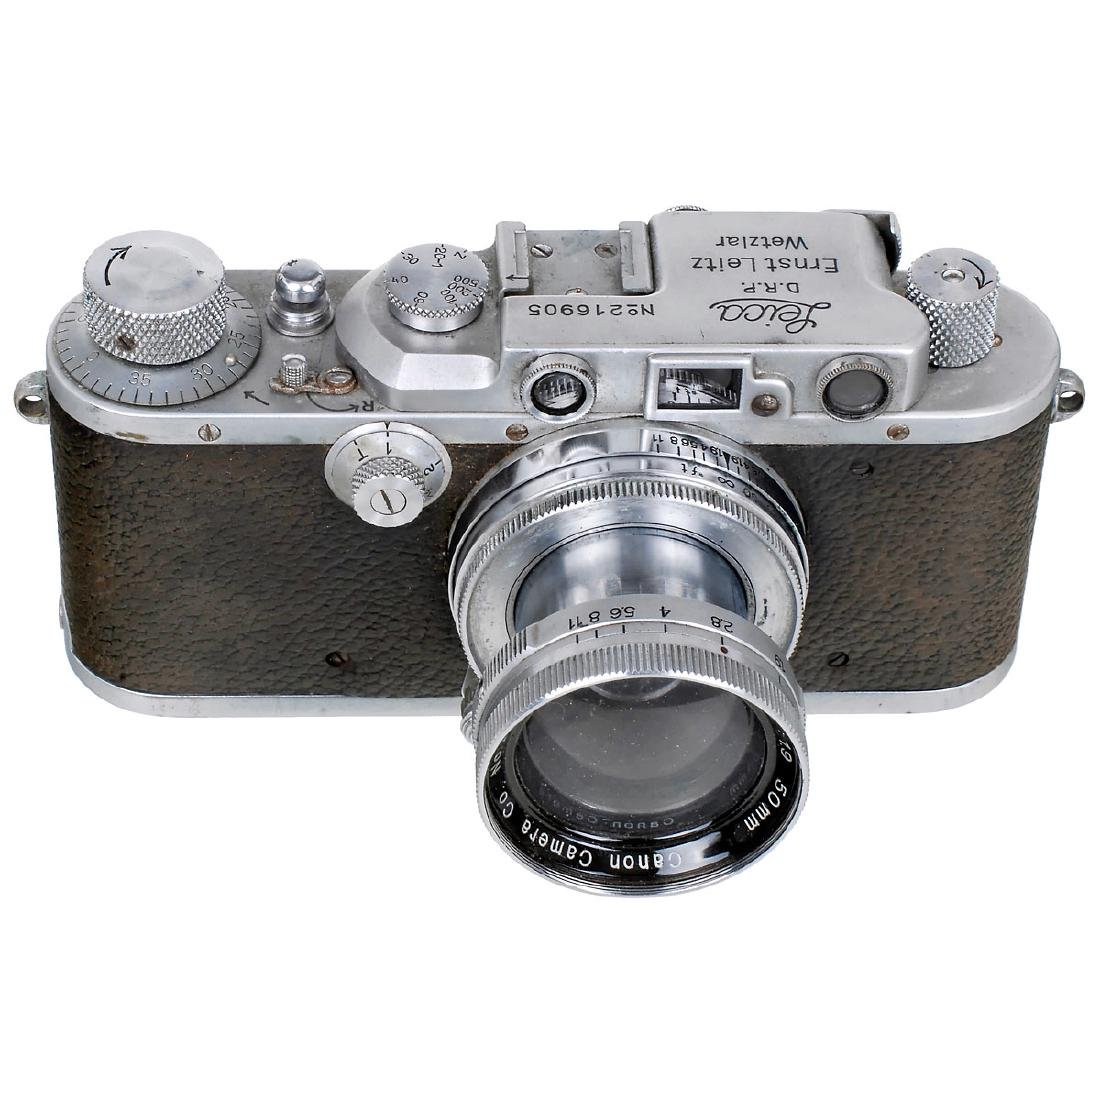 Leica III (F) with Serenar 1,9/50 mm, 1936